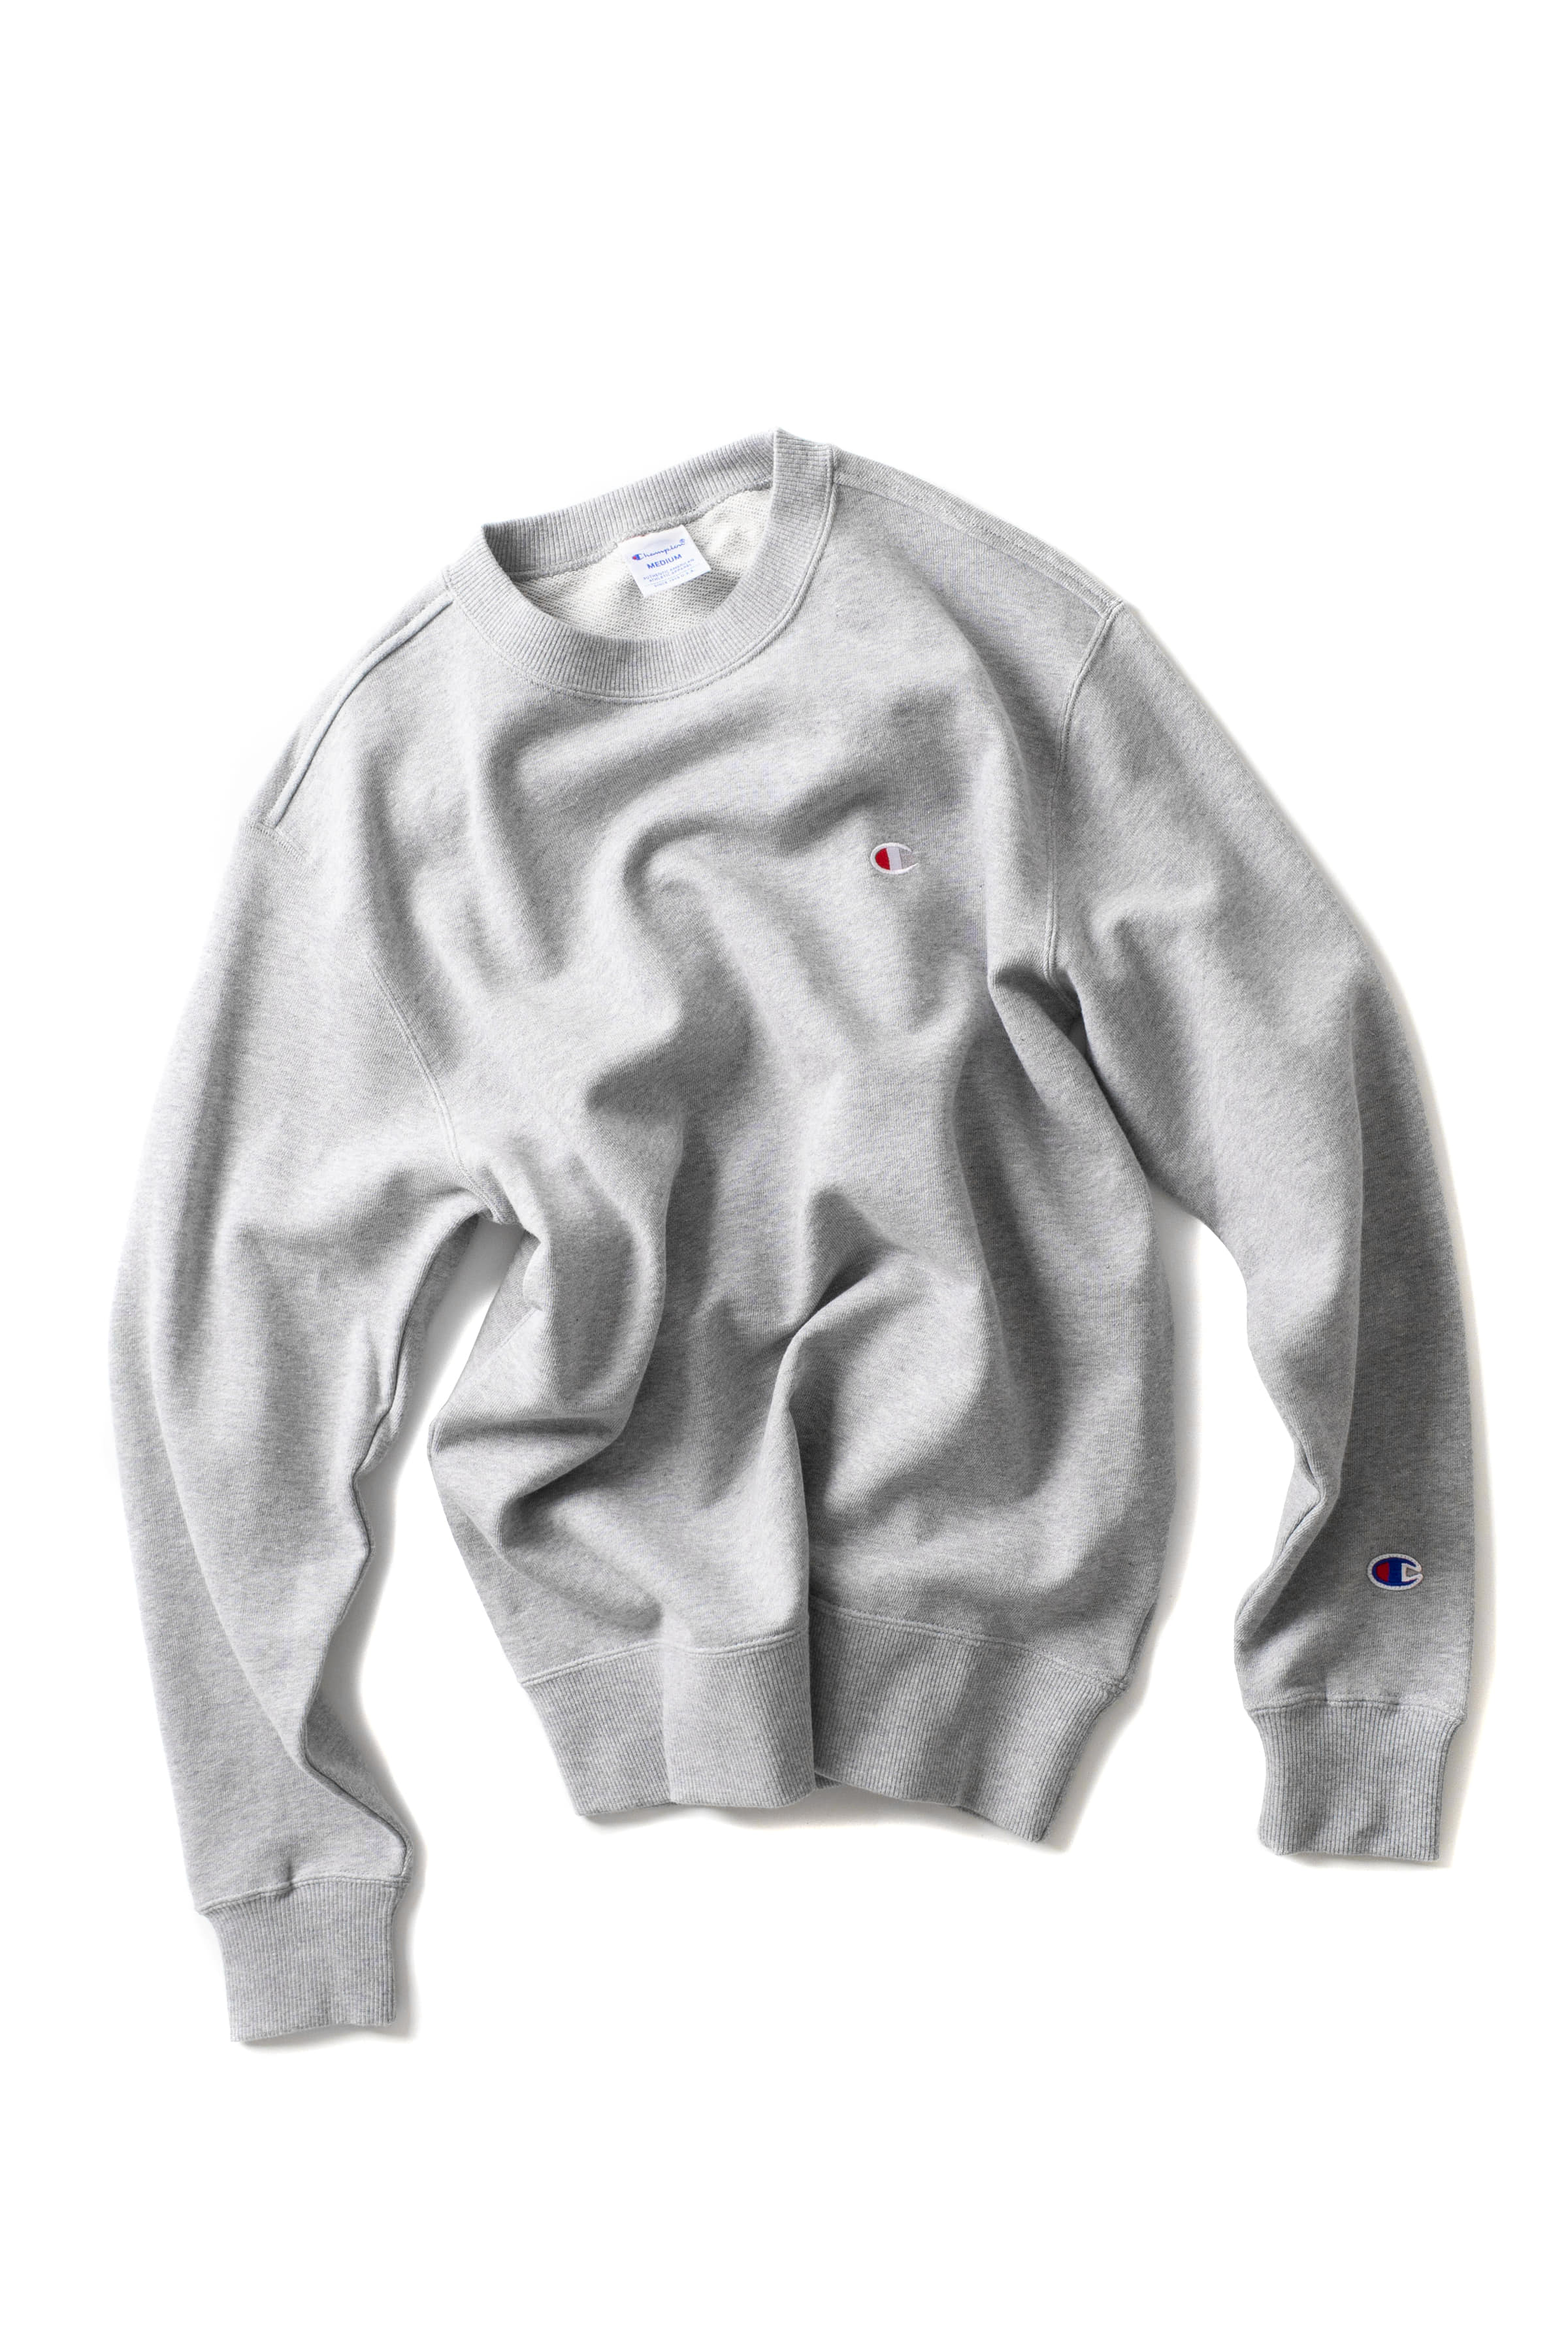 Champion : Basic Crewneck Sweat Shirt (Grey)